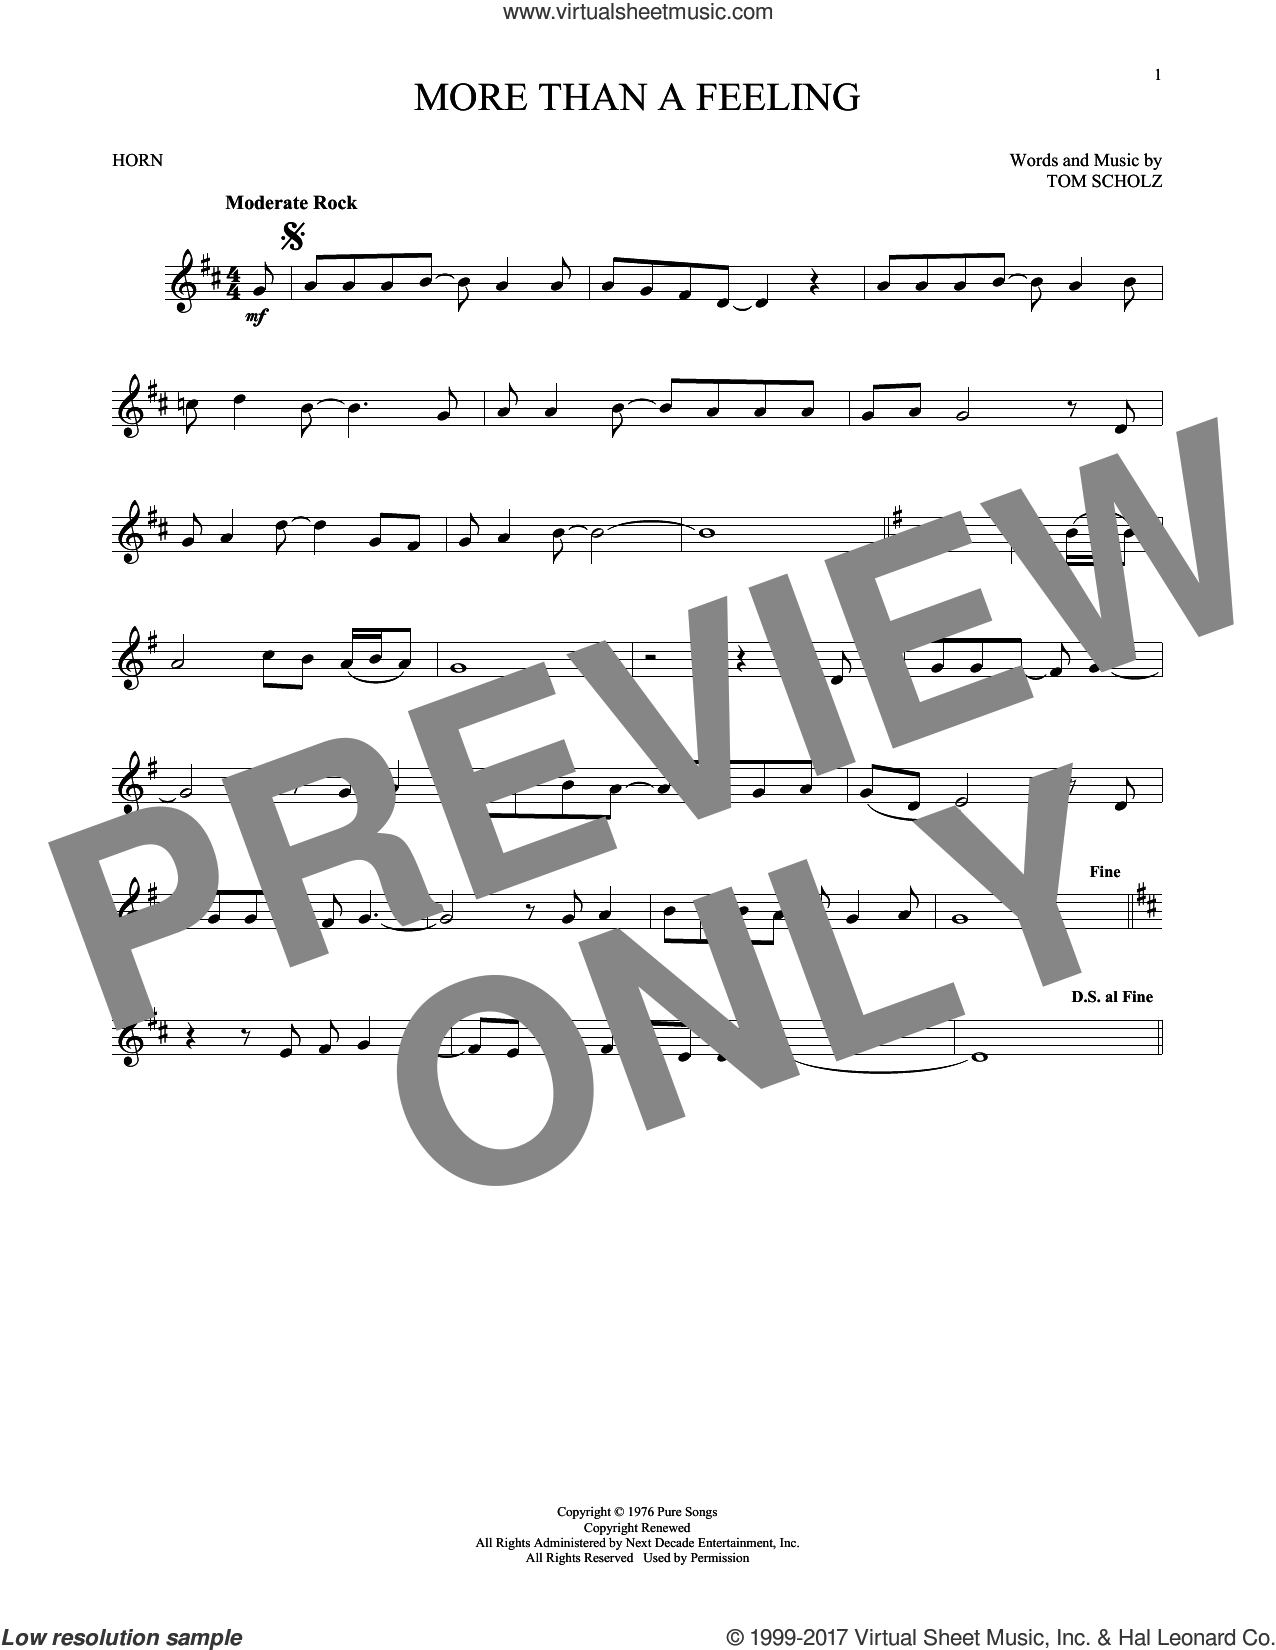 More Than A Feeling sheet music for horn solo by Boston and Tom Scholz, intermediate skill level